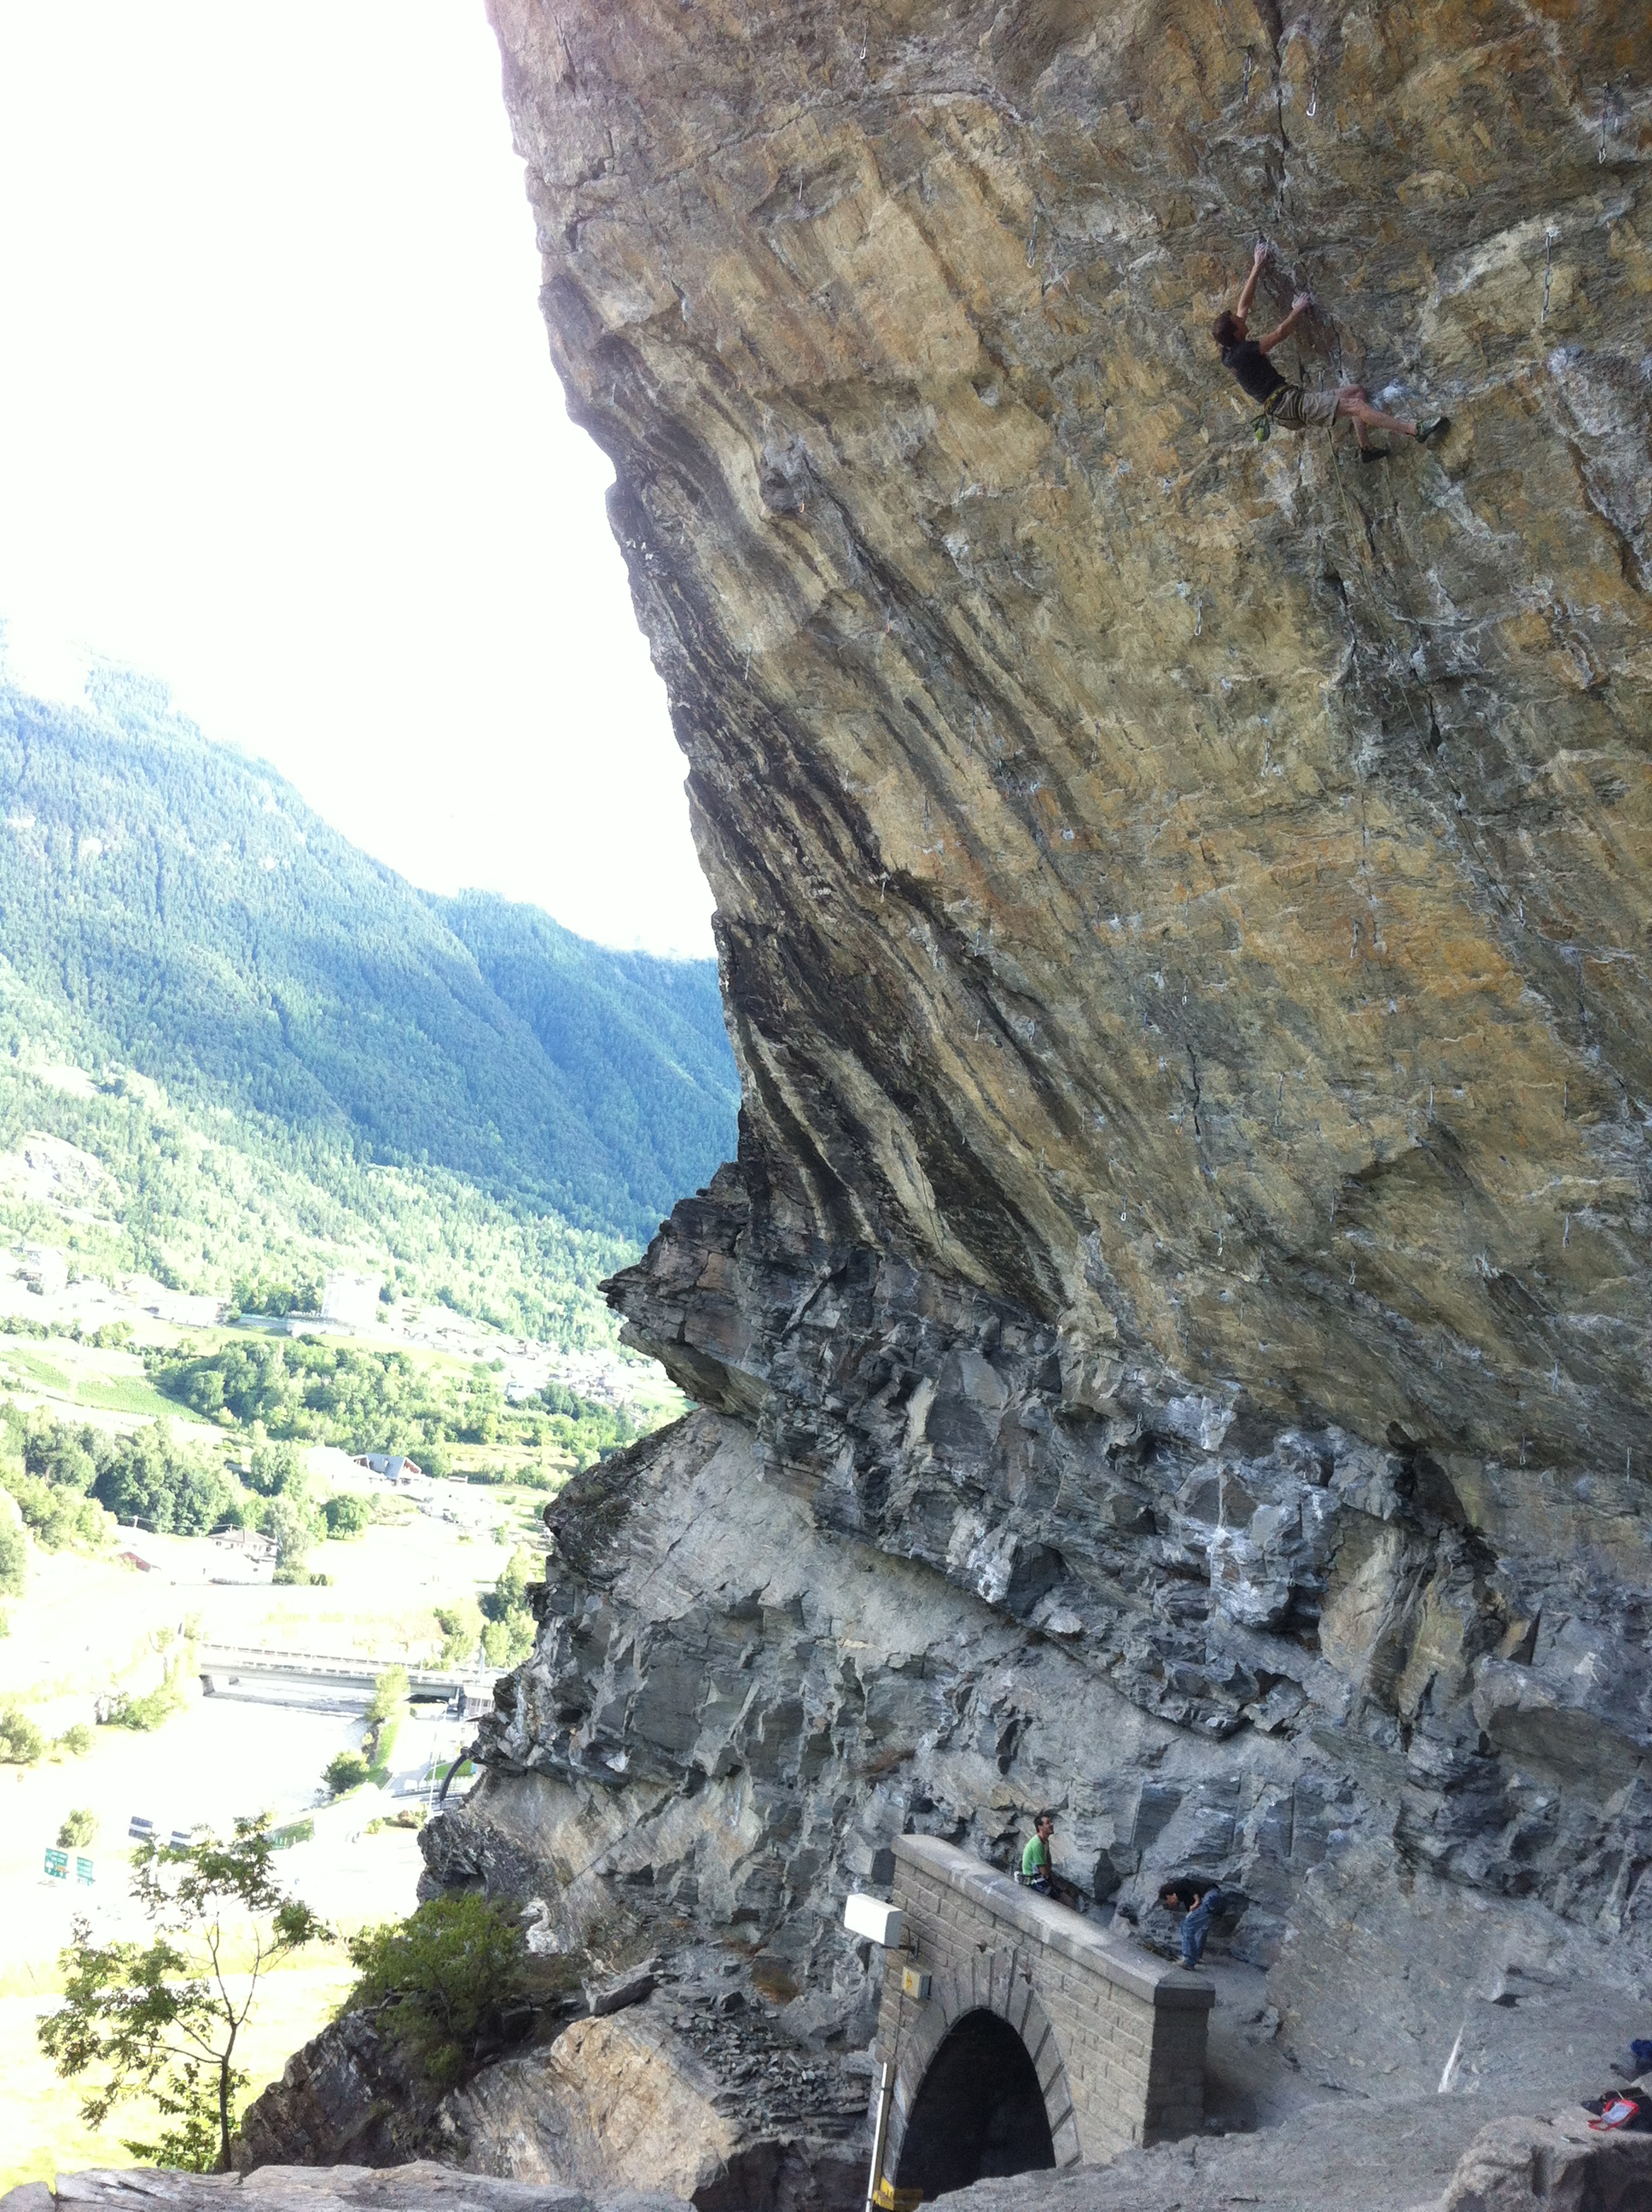 Jack Geldard climbing Parsifal at the Sarre Roof. Not the most beautiful of crags, but it certainly gets you pumped!